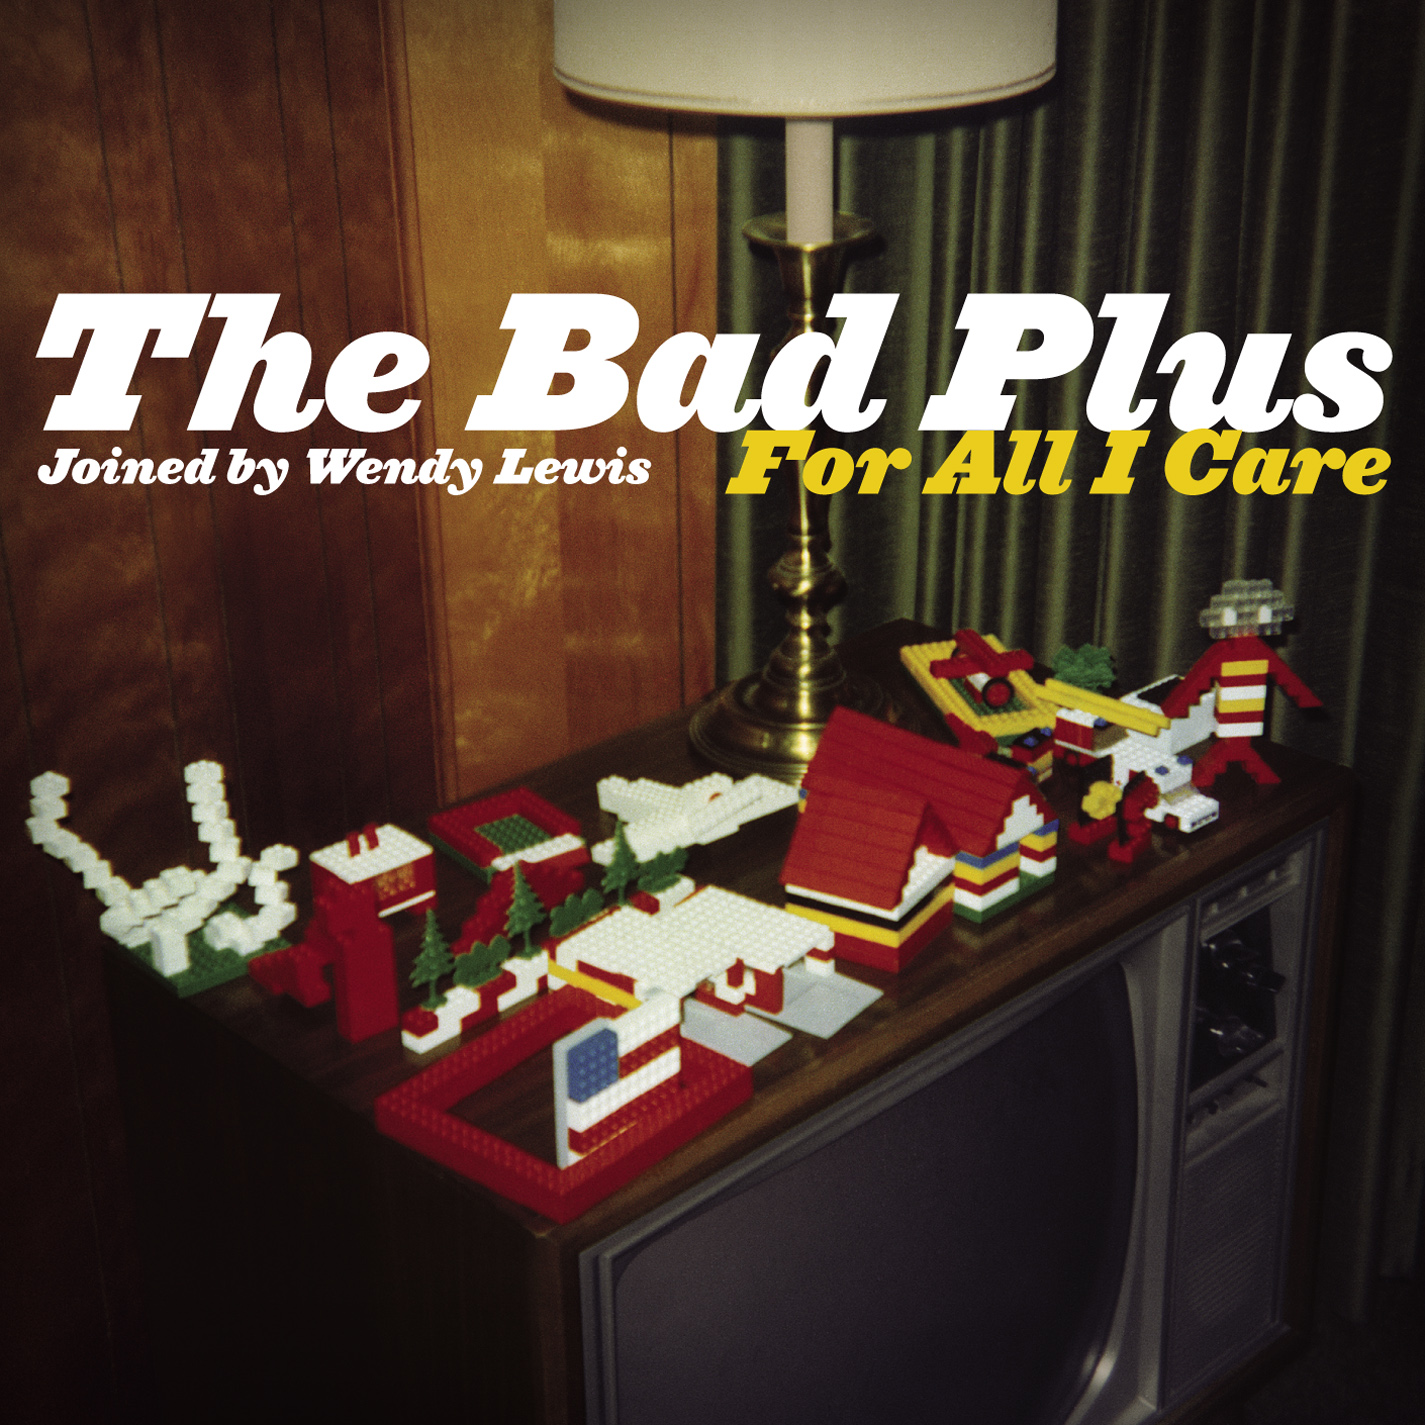 HUCD3148 The Bad Plus - For All I Care_RGB.jpg